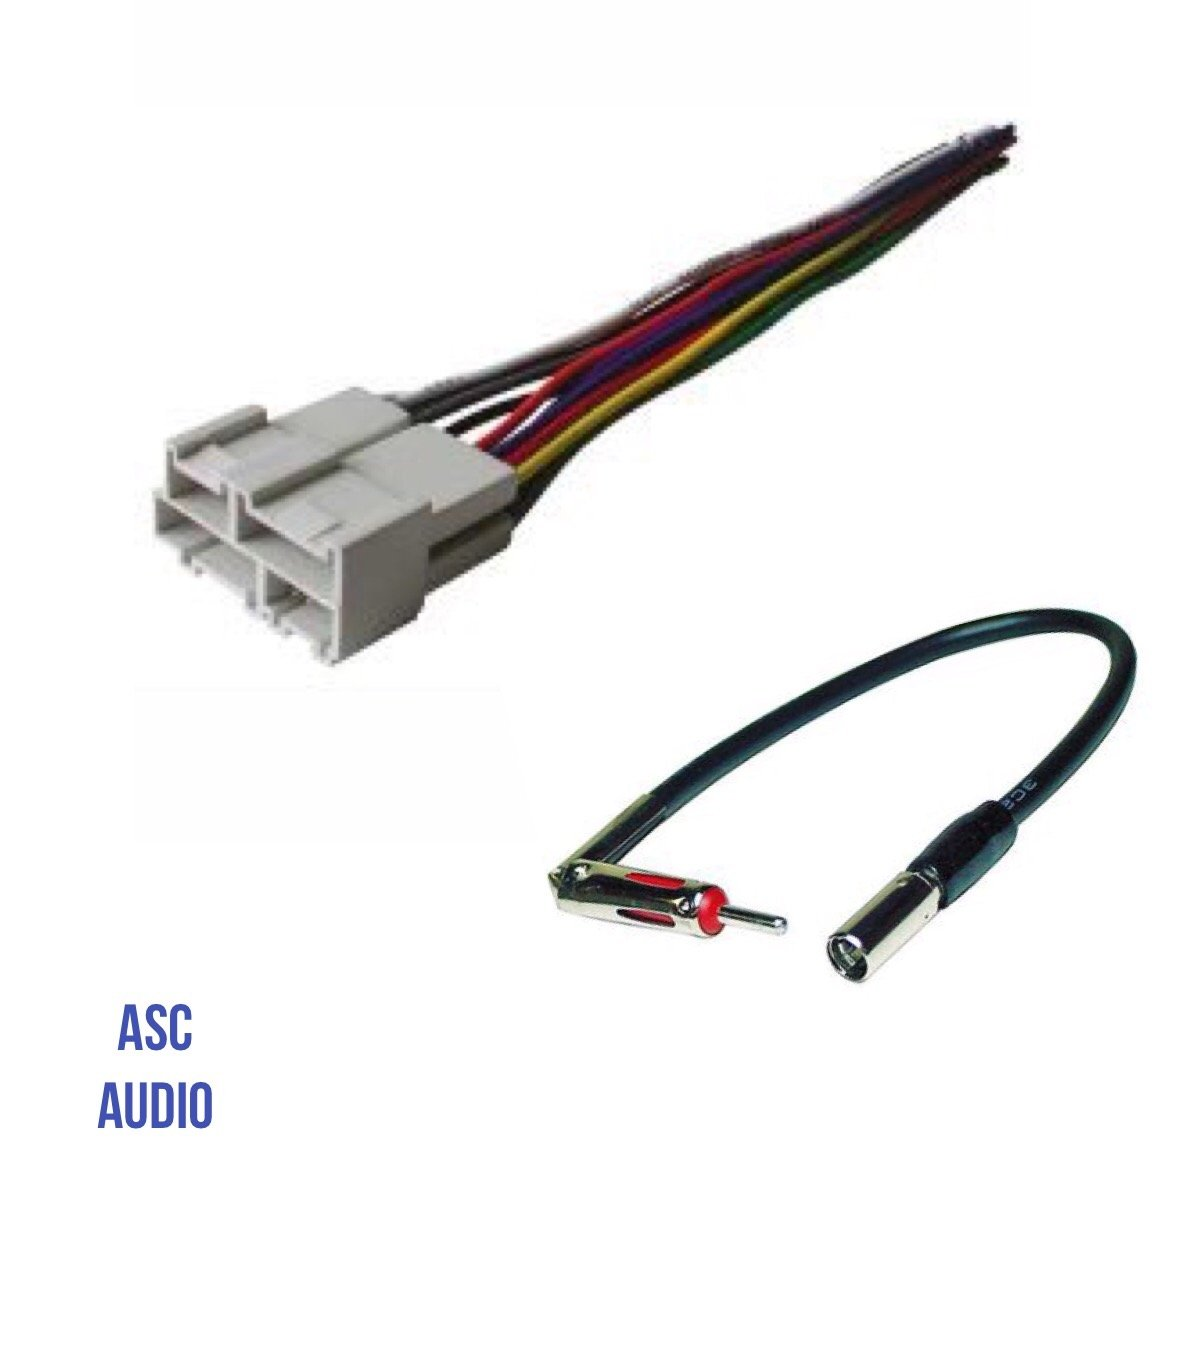 Asc Audio Car Stereo Radio Wire Harness And Antenna 2001 Cadillac Eldorado Wiring Adapter To Aftermarket For Some Buick Chevrolet Gmc Oldsmobile Pontiac Saturn